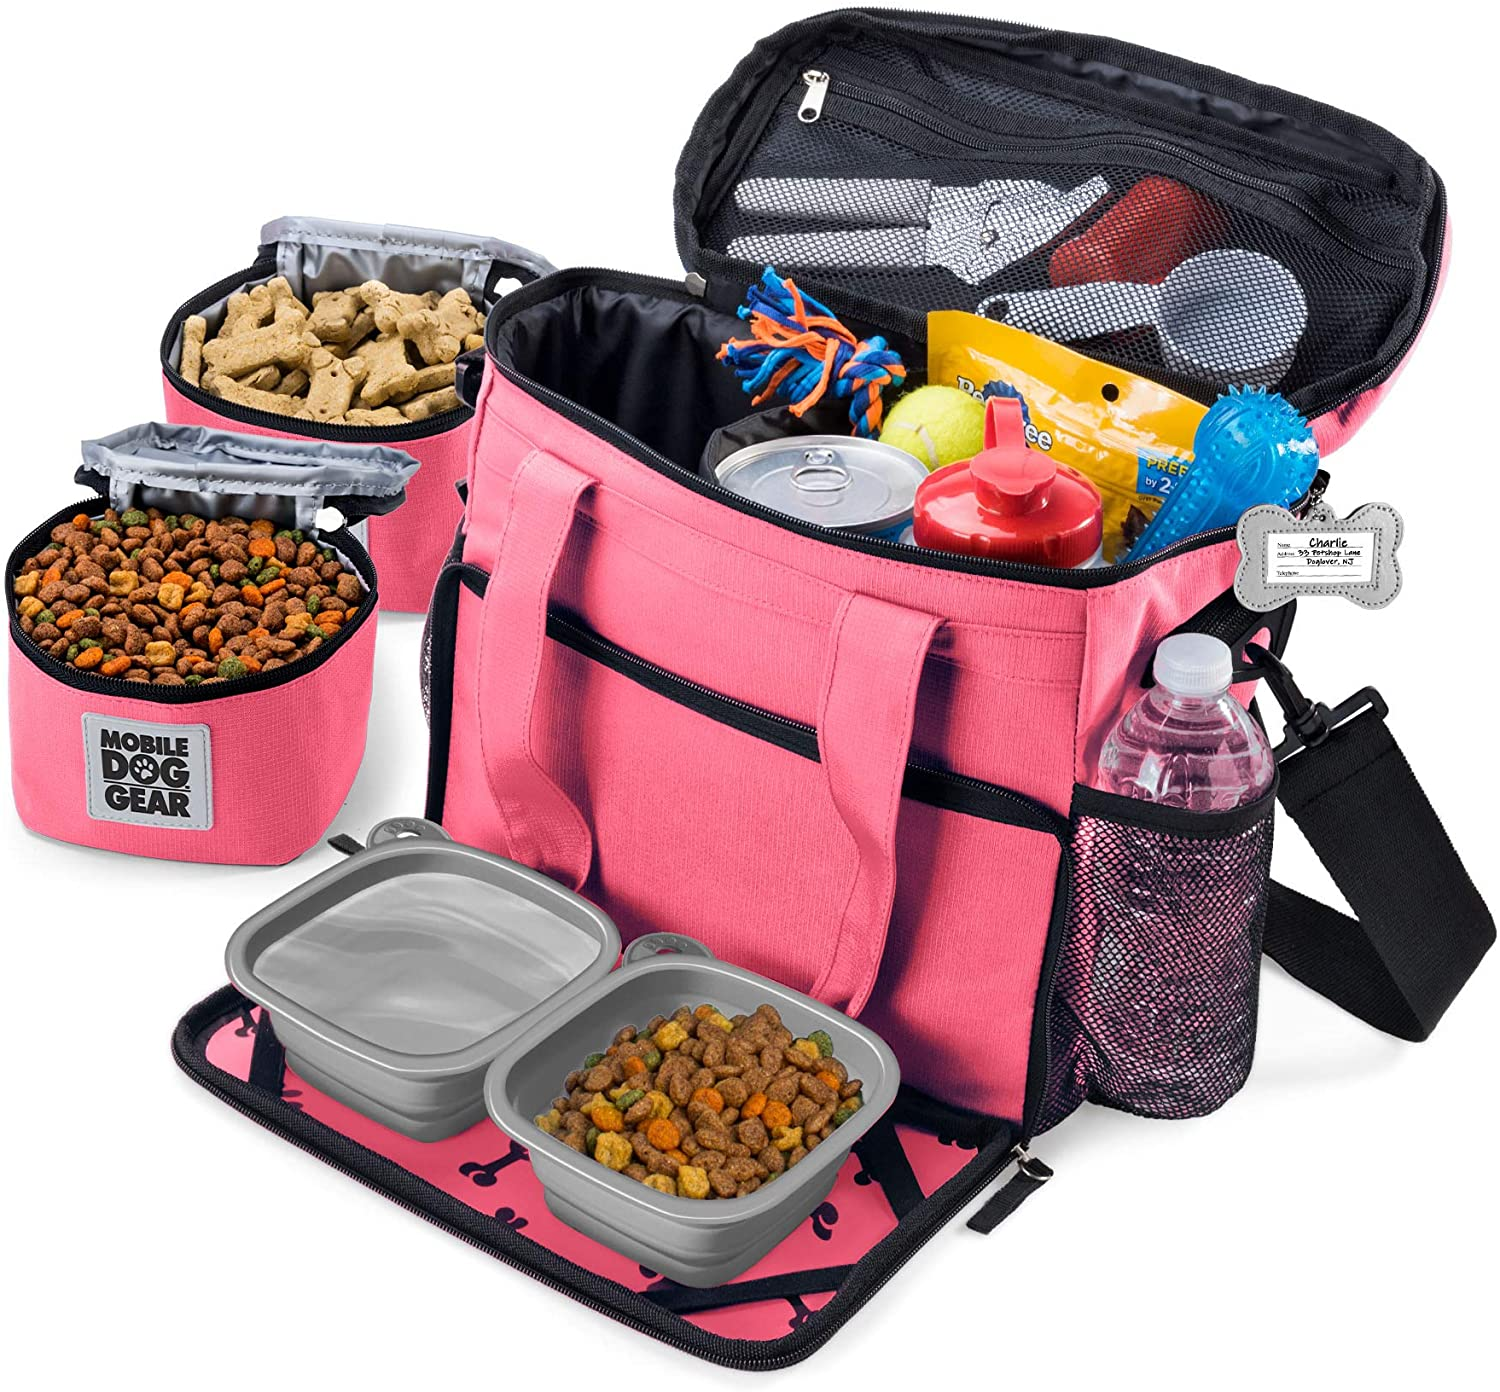 Mobile Dog Gear, Week Away Dog Travel Bag for Small Dogs, Includes Lined Food Carriers and 2 Collapsible Dog Bowl, Pink